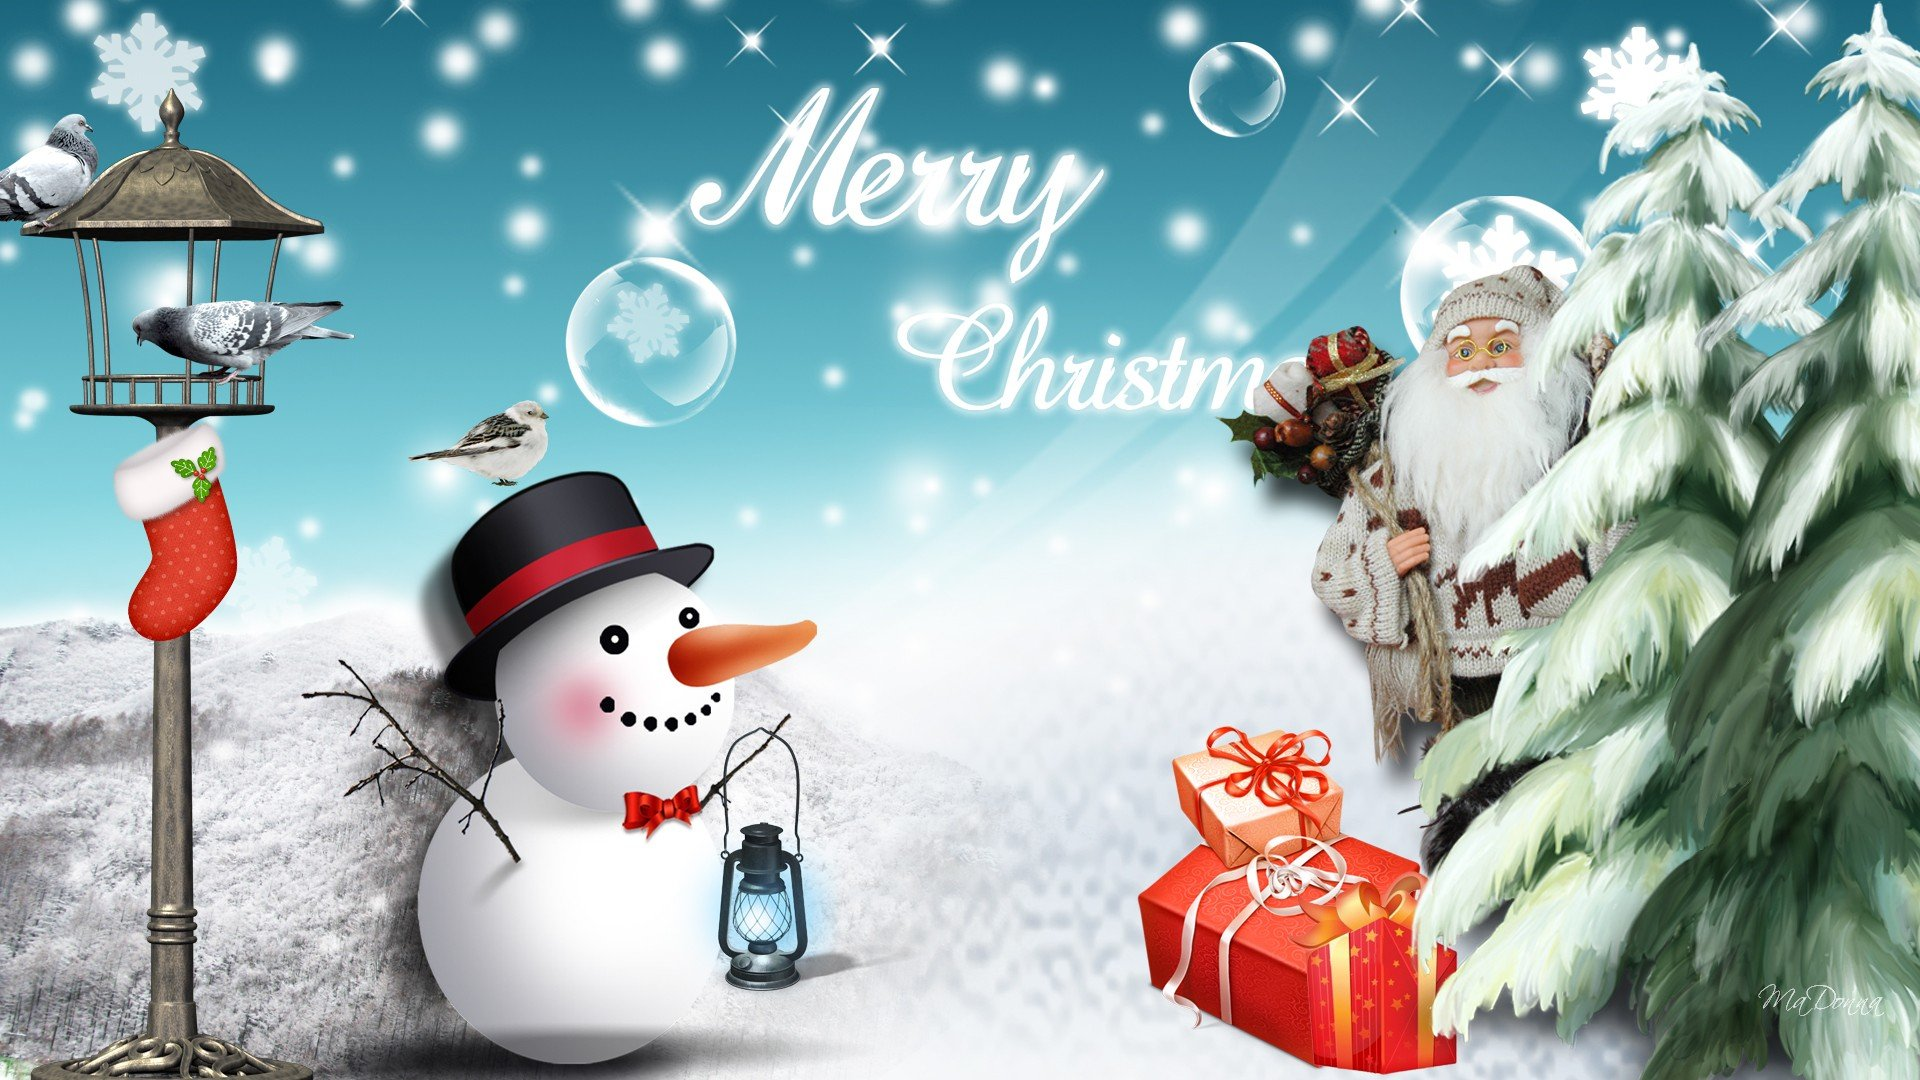 Christmas Snowman Wallpaper